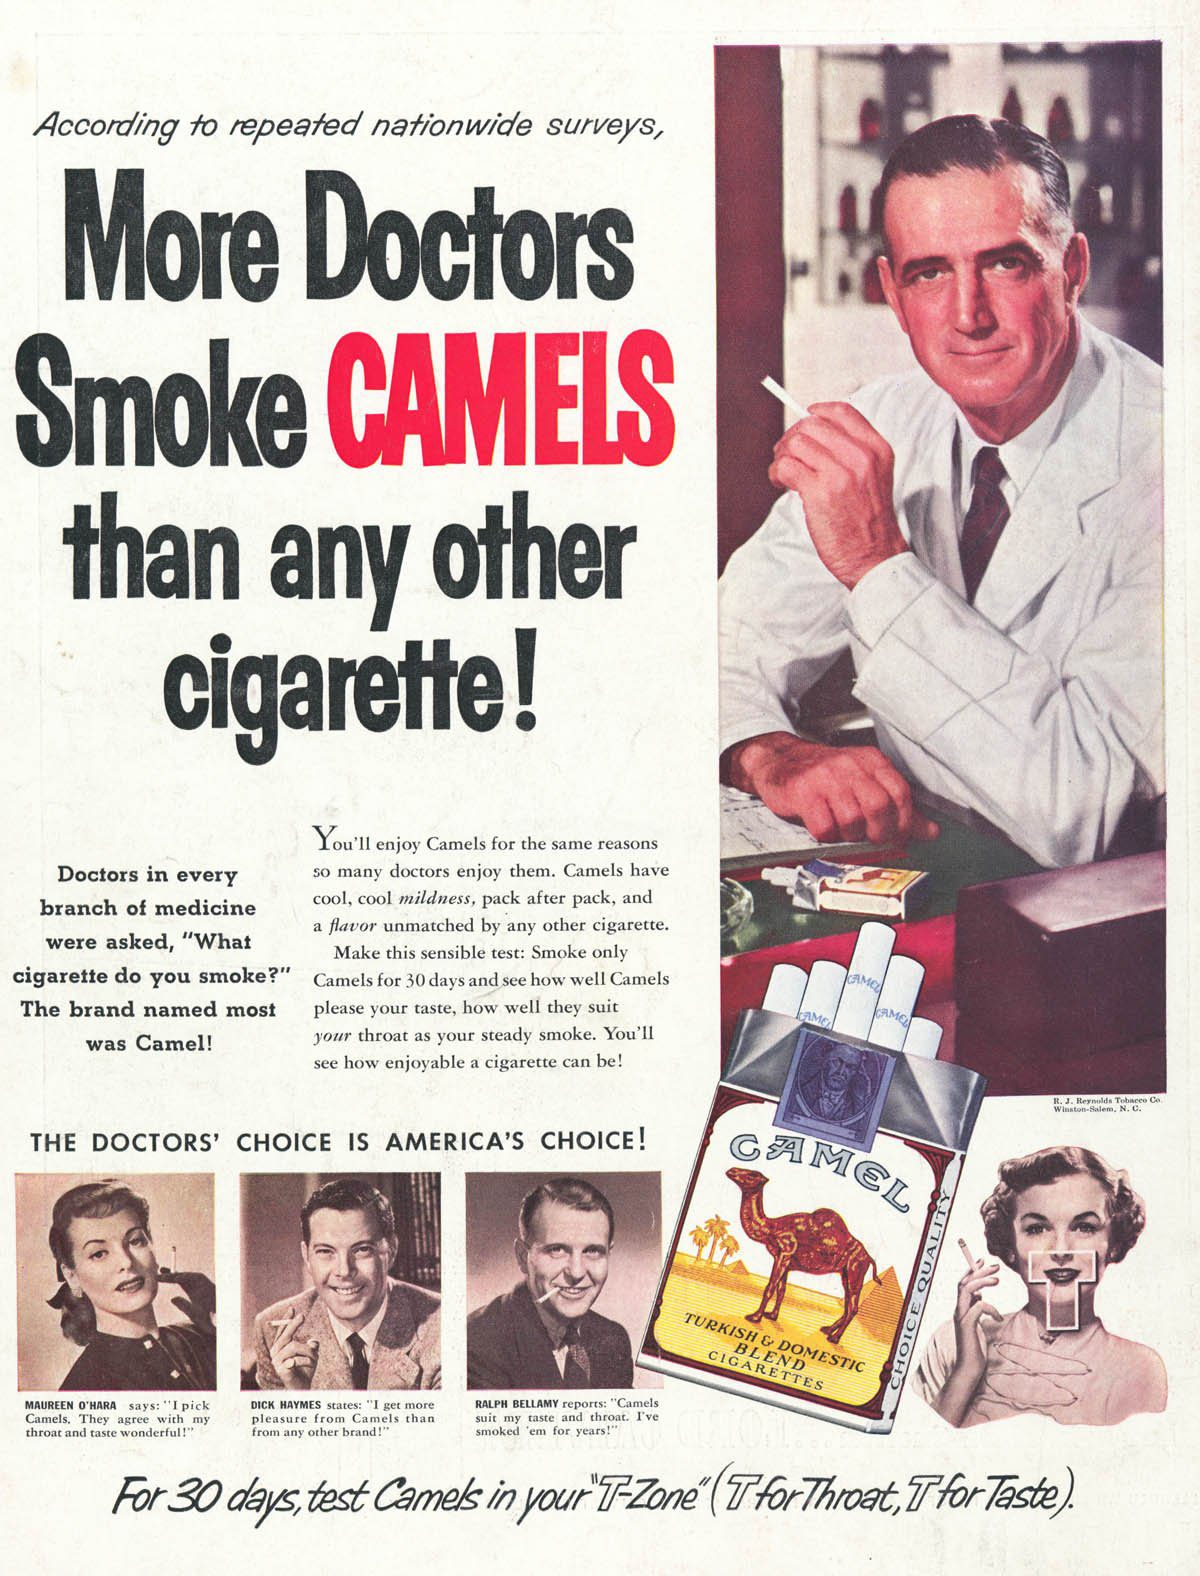 more doctors smoke camels